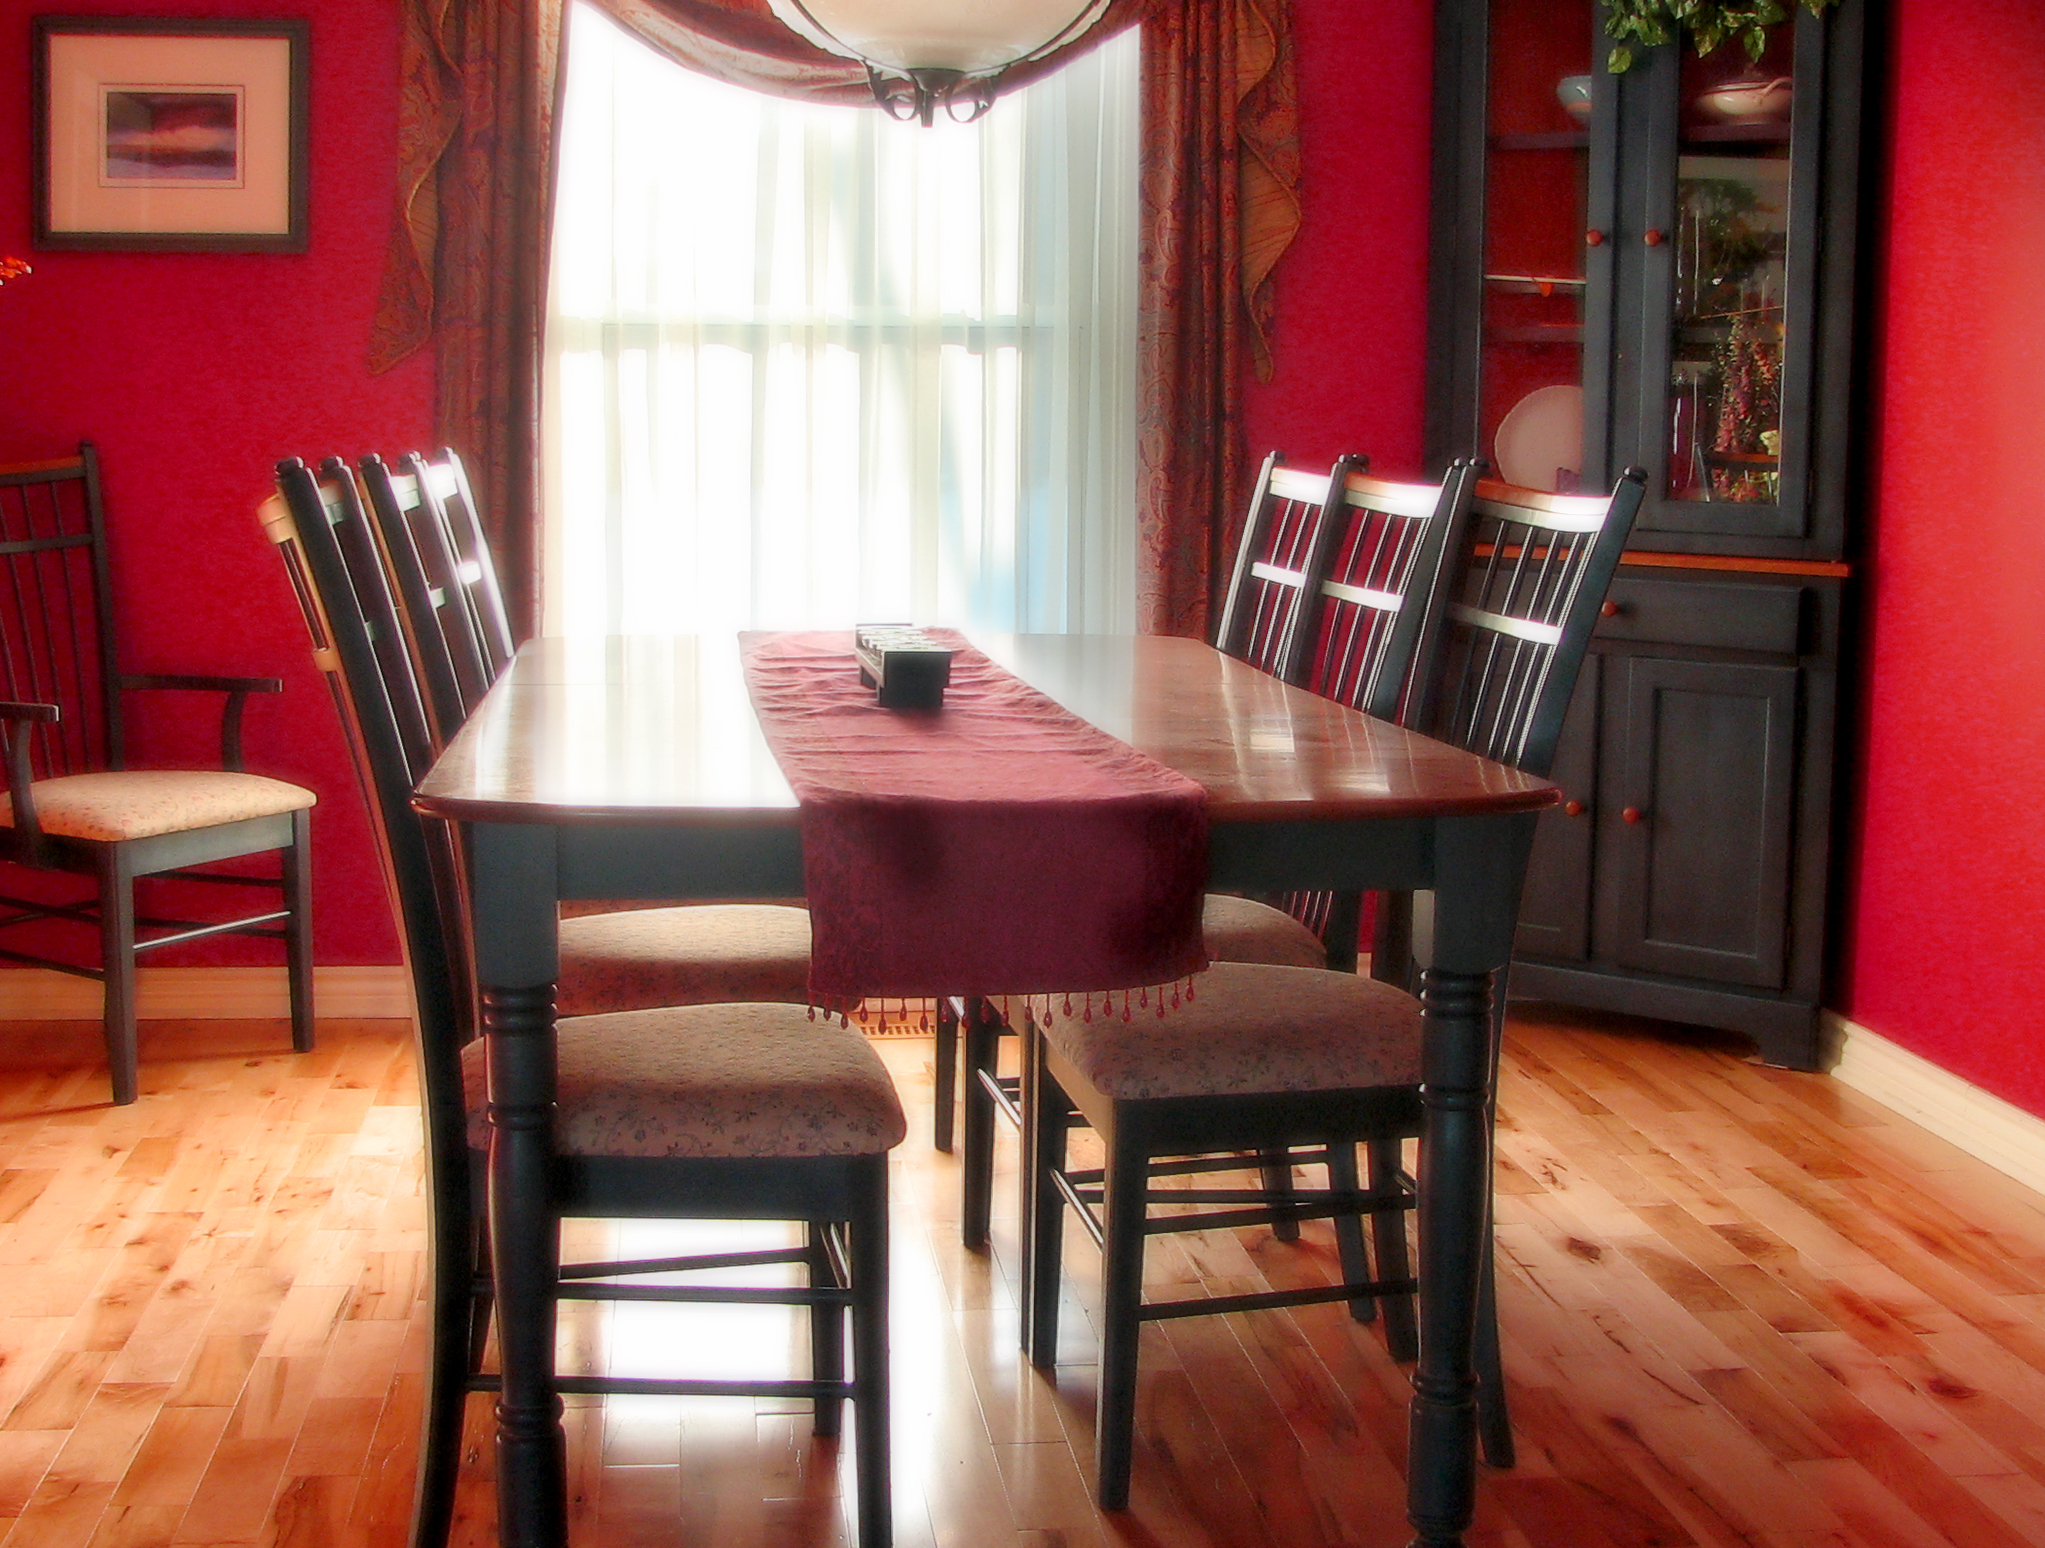 file dinner table and chairs jpg wikimedia commons